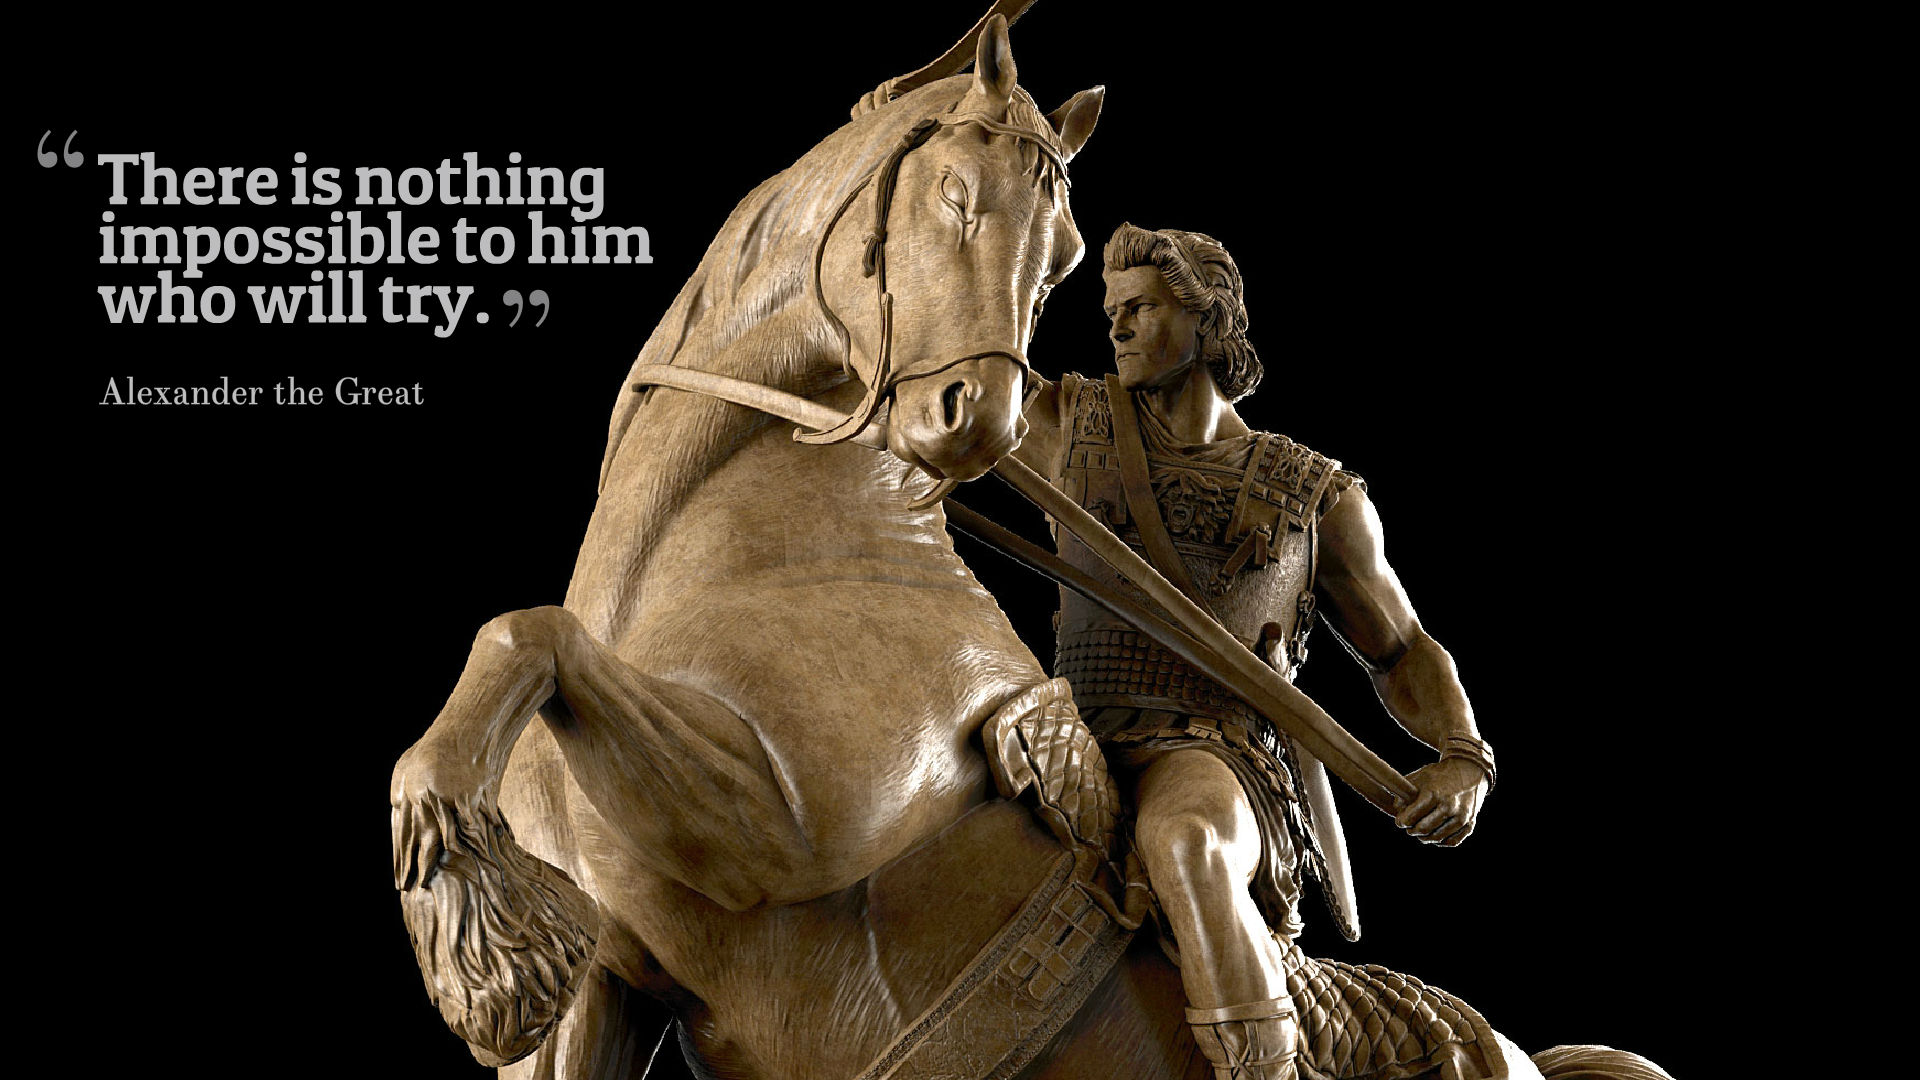 Alexander The Great Quotes Hd Wallpapers - Alexander The Great Arh Statues - HD Wallpaper